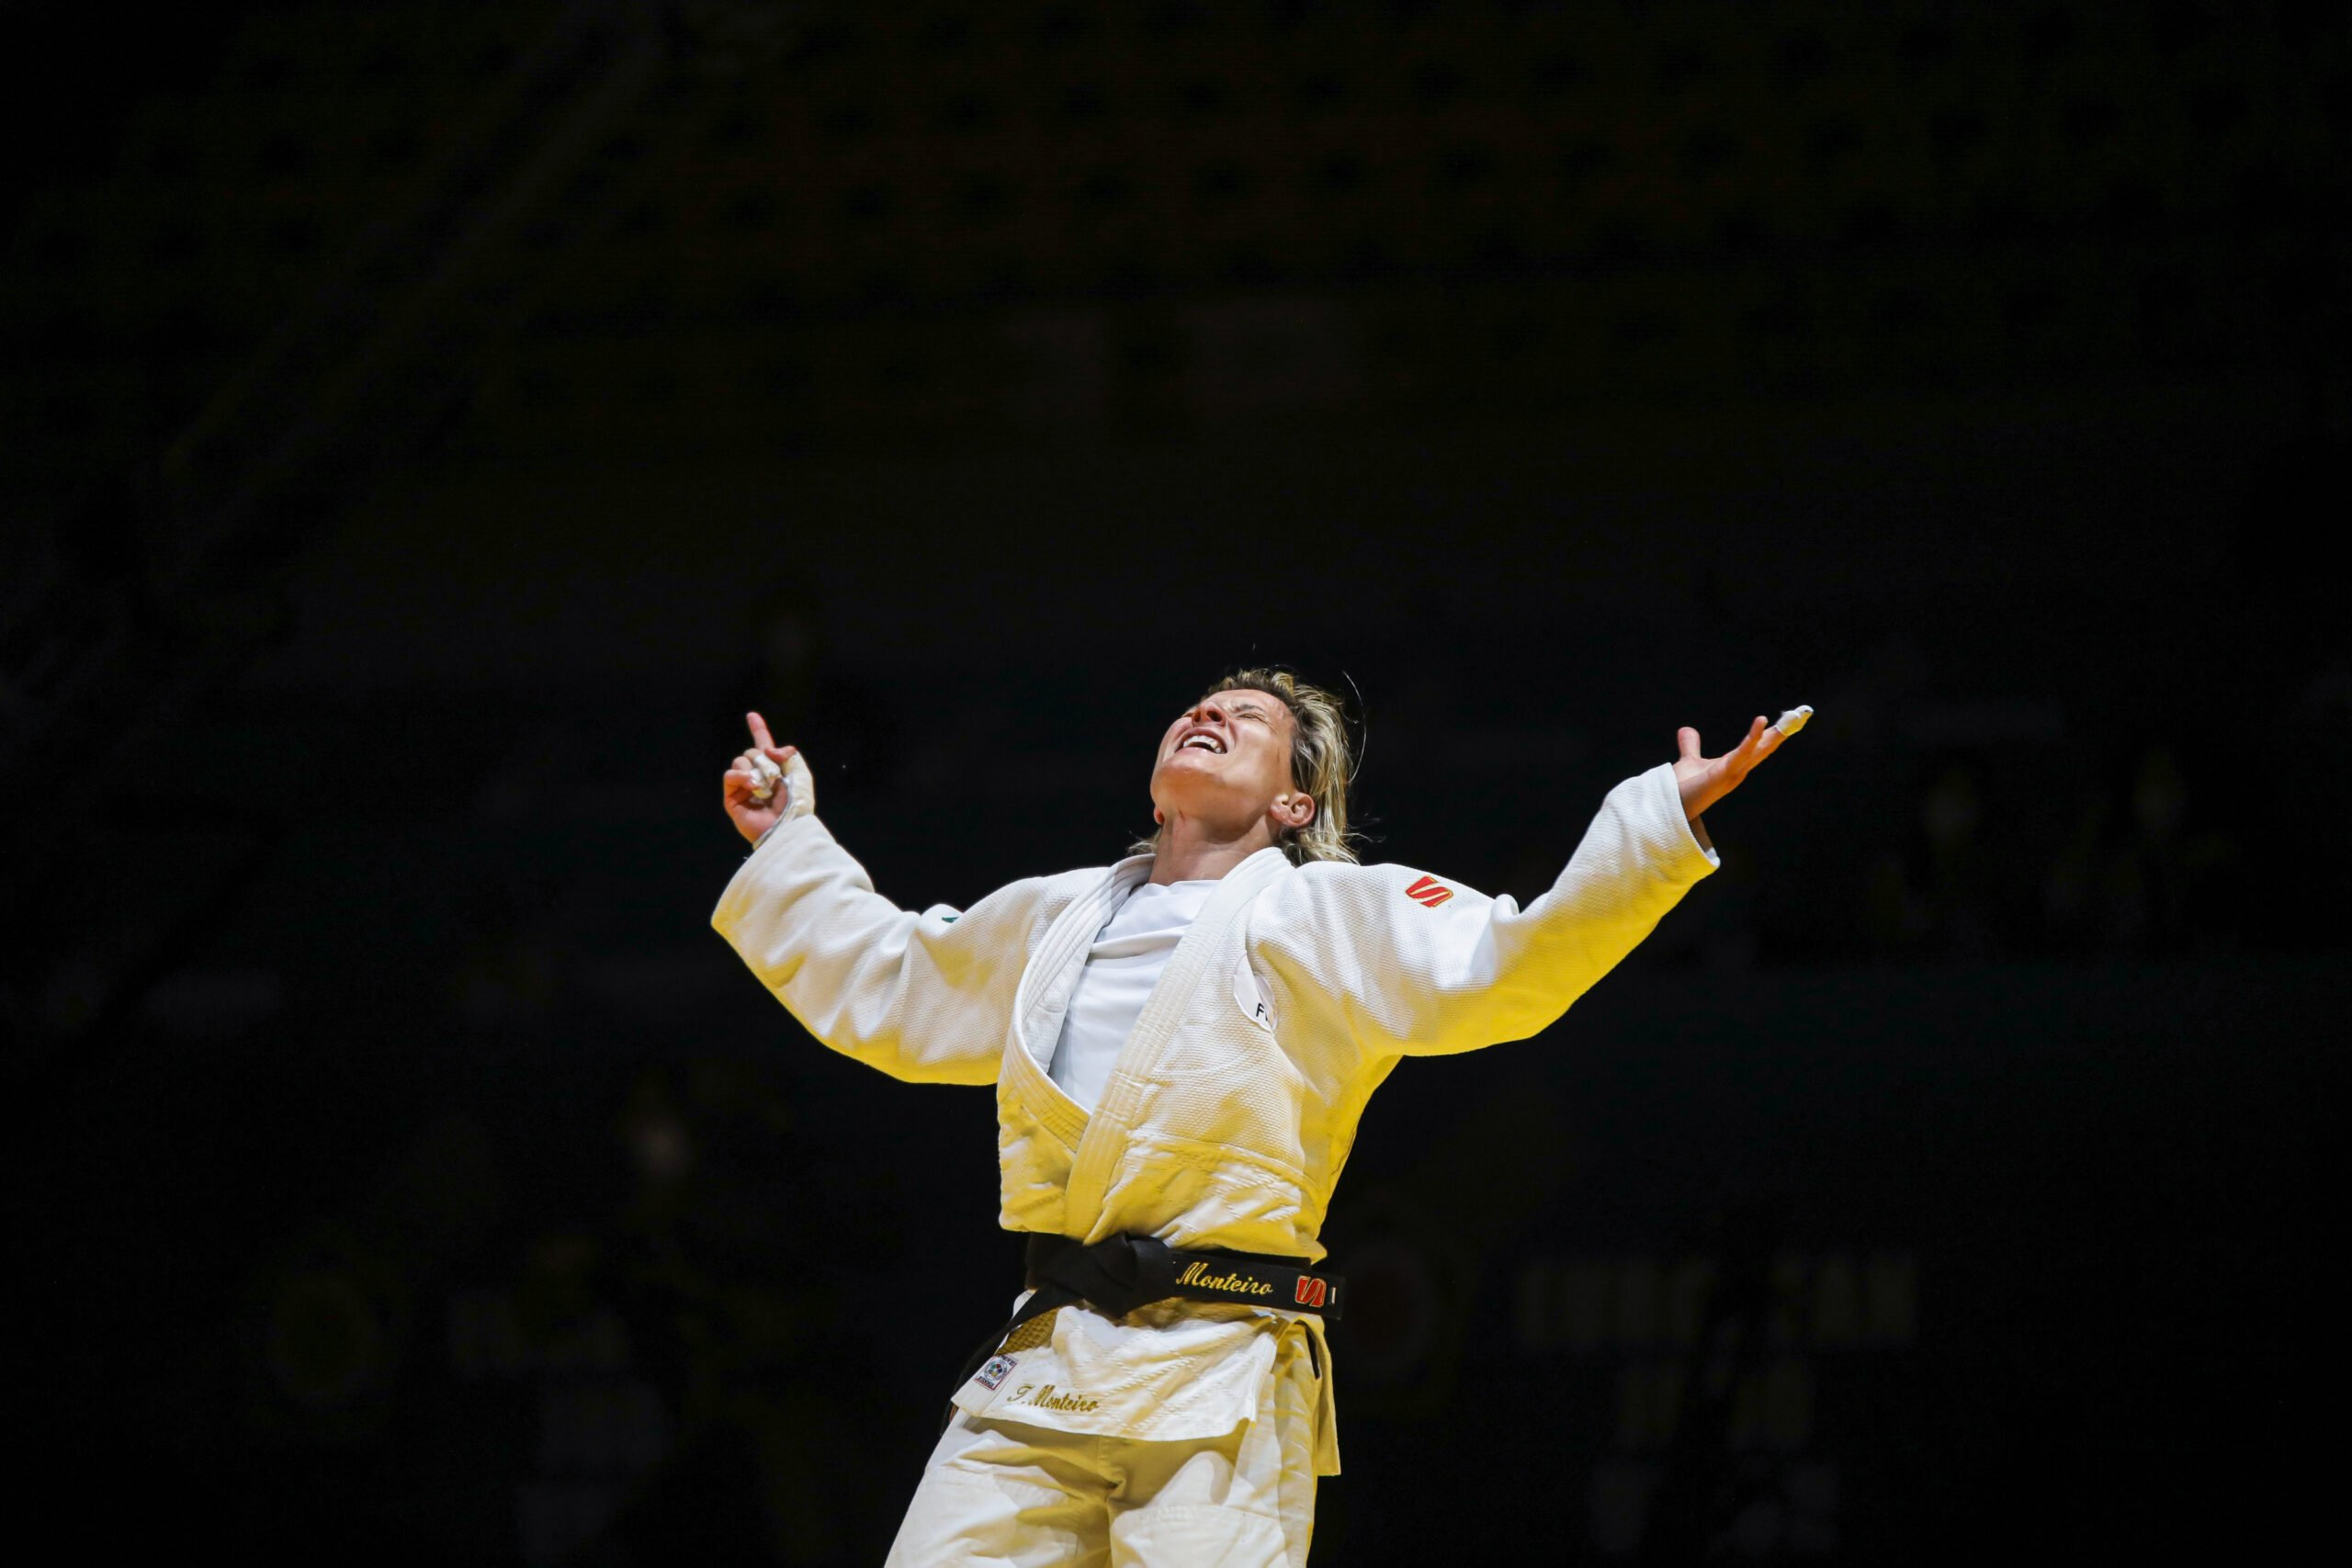 MONTEIRO COLLECTS SIXTH EUROPEAN TITLE IN STYLE